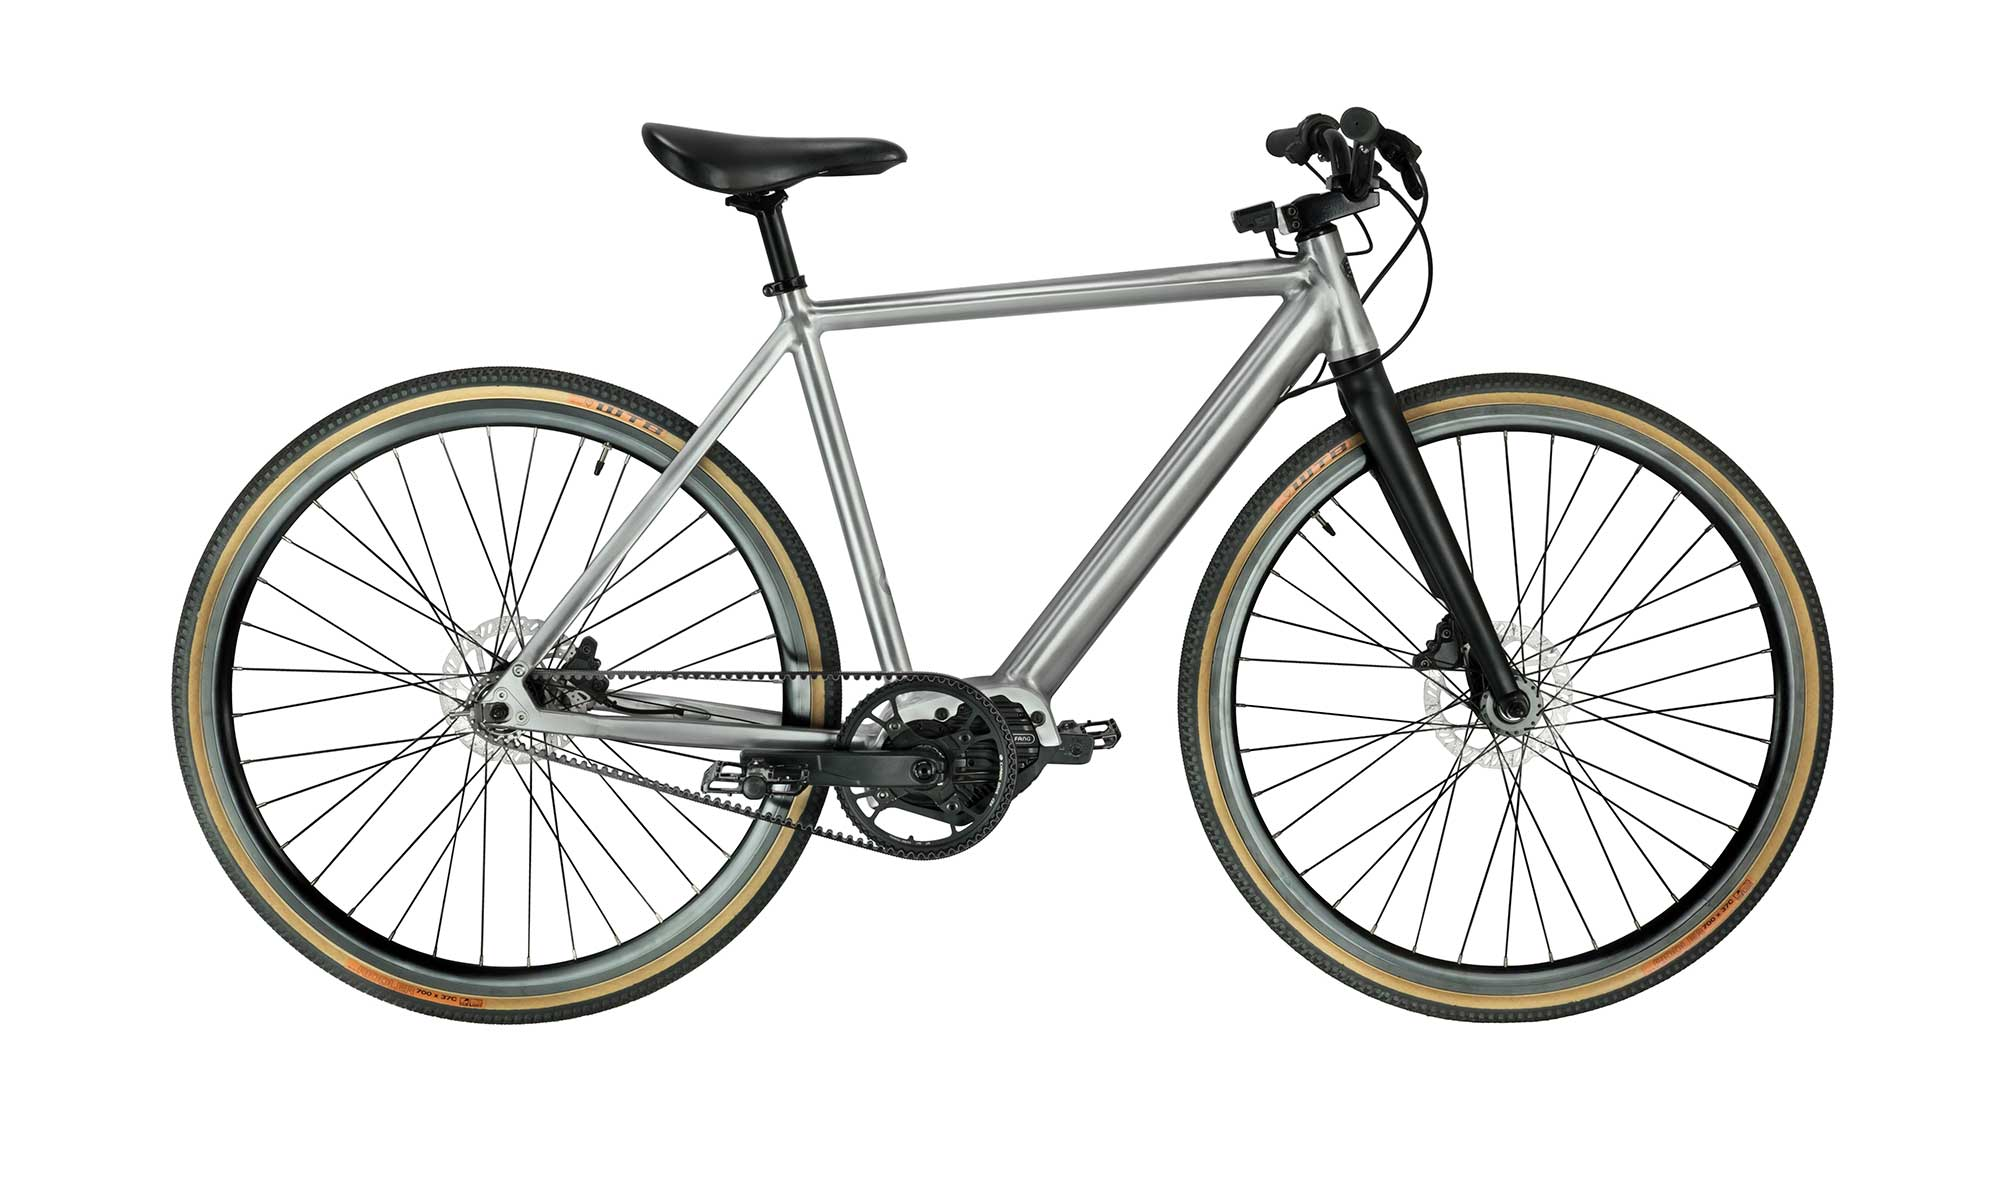 Miller light electric bike from Enki Cycles